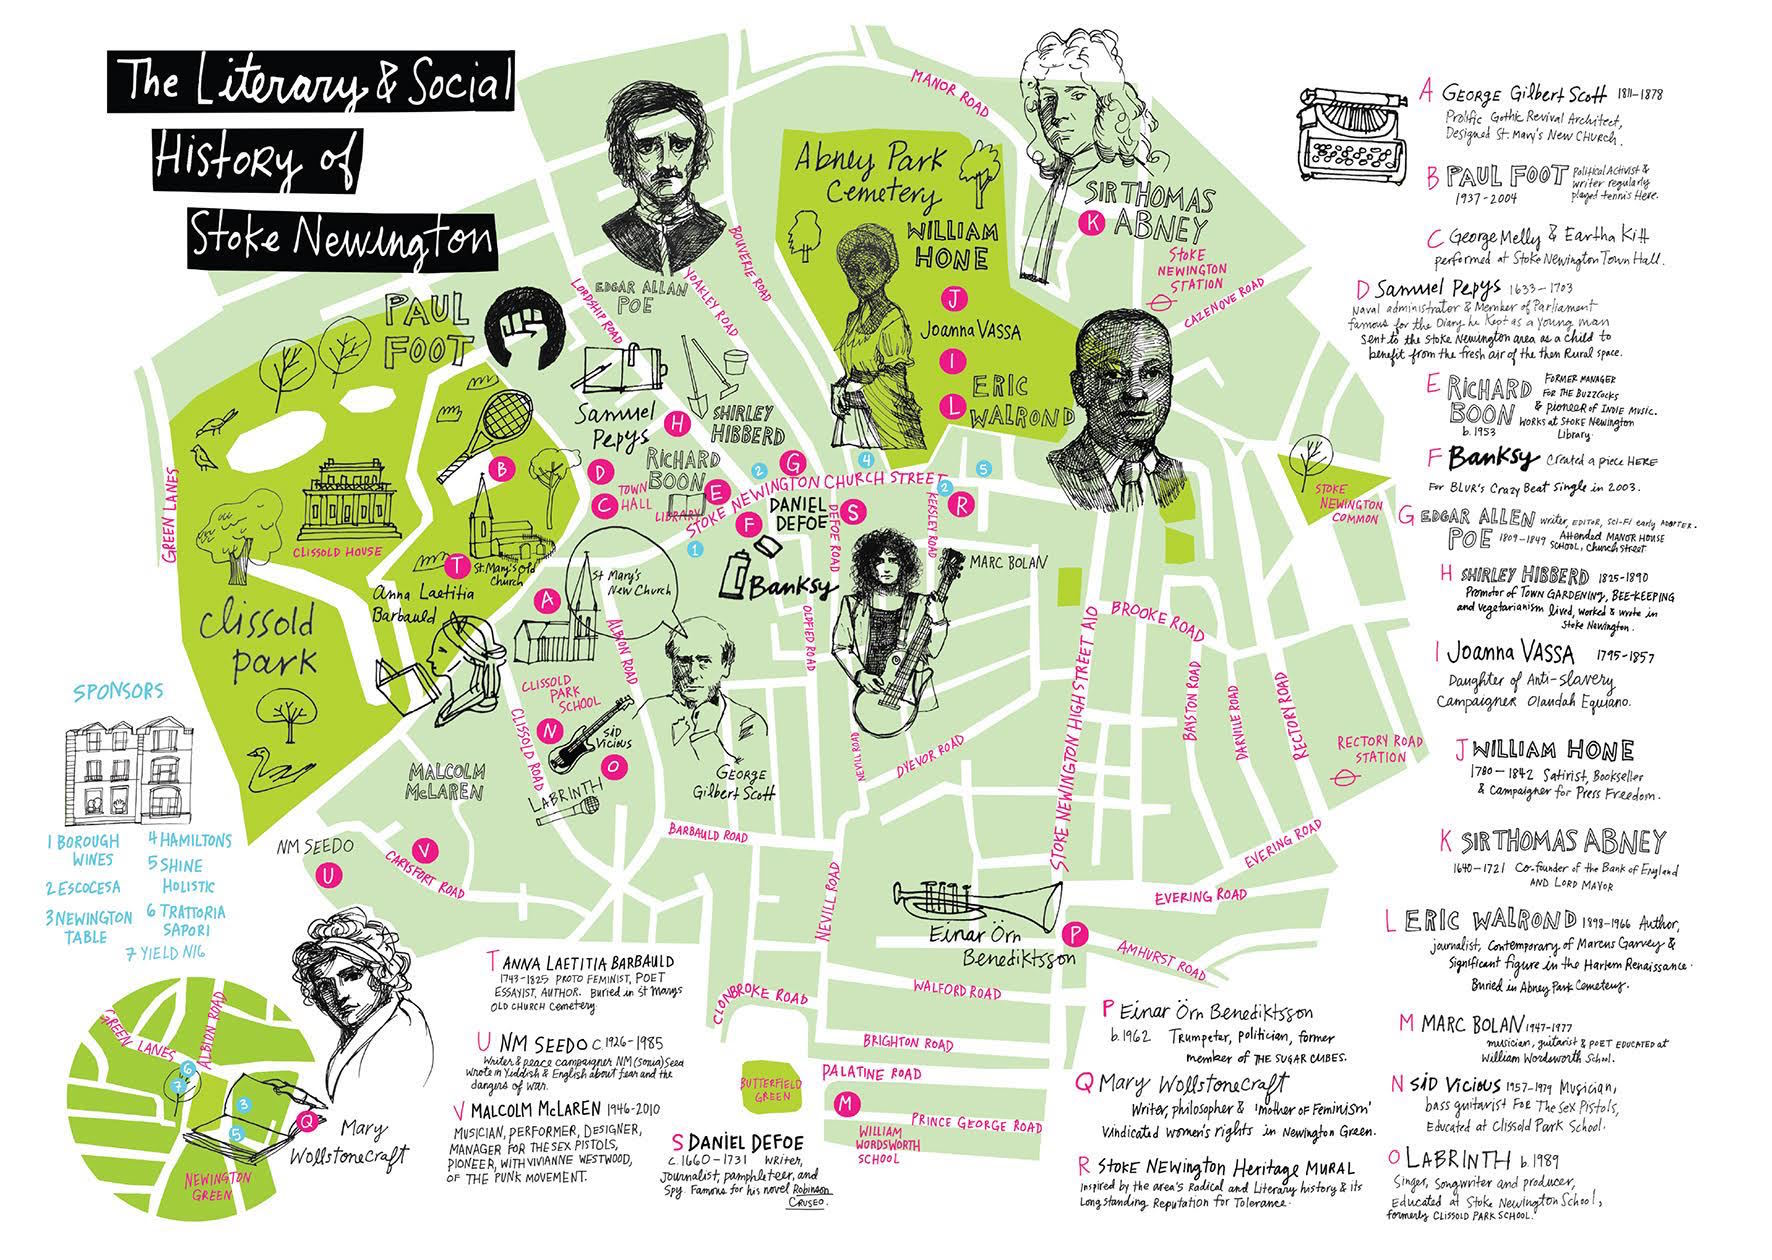 Stoke Newington Map Pepys And Banksy Feature In New Stoke Newington Map | Londonist